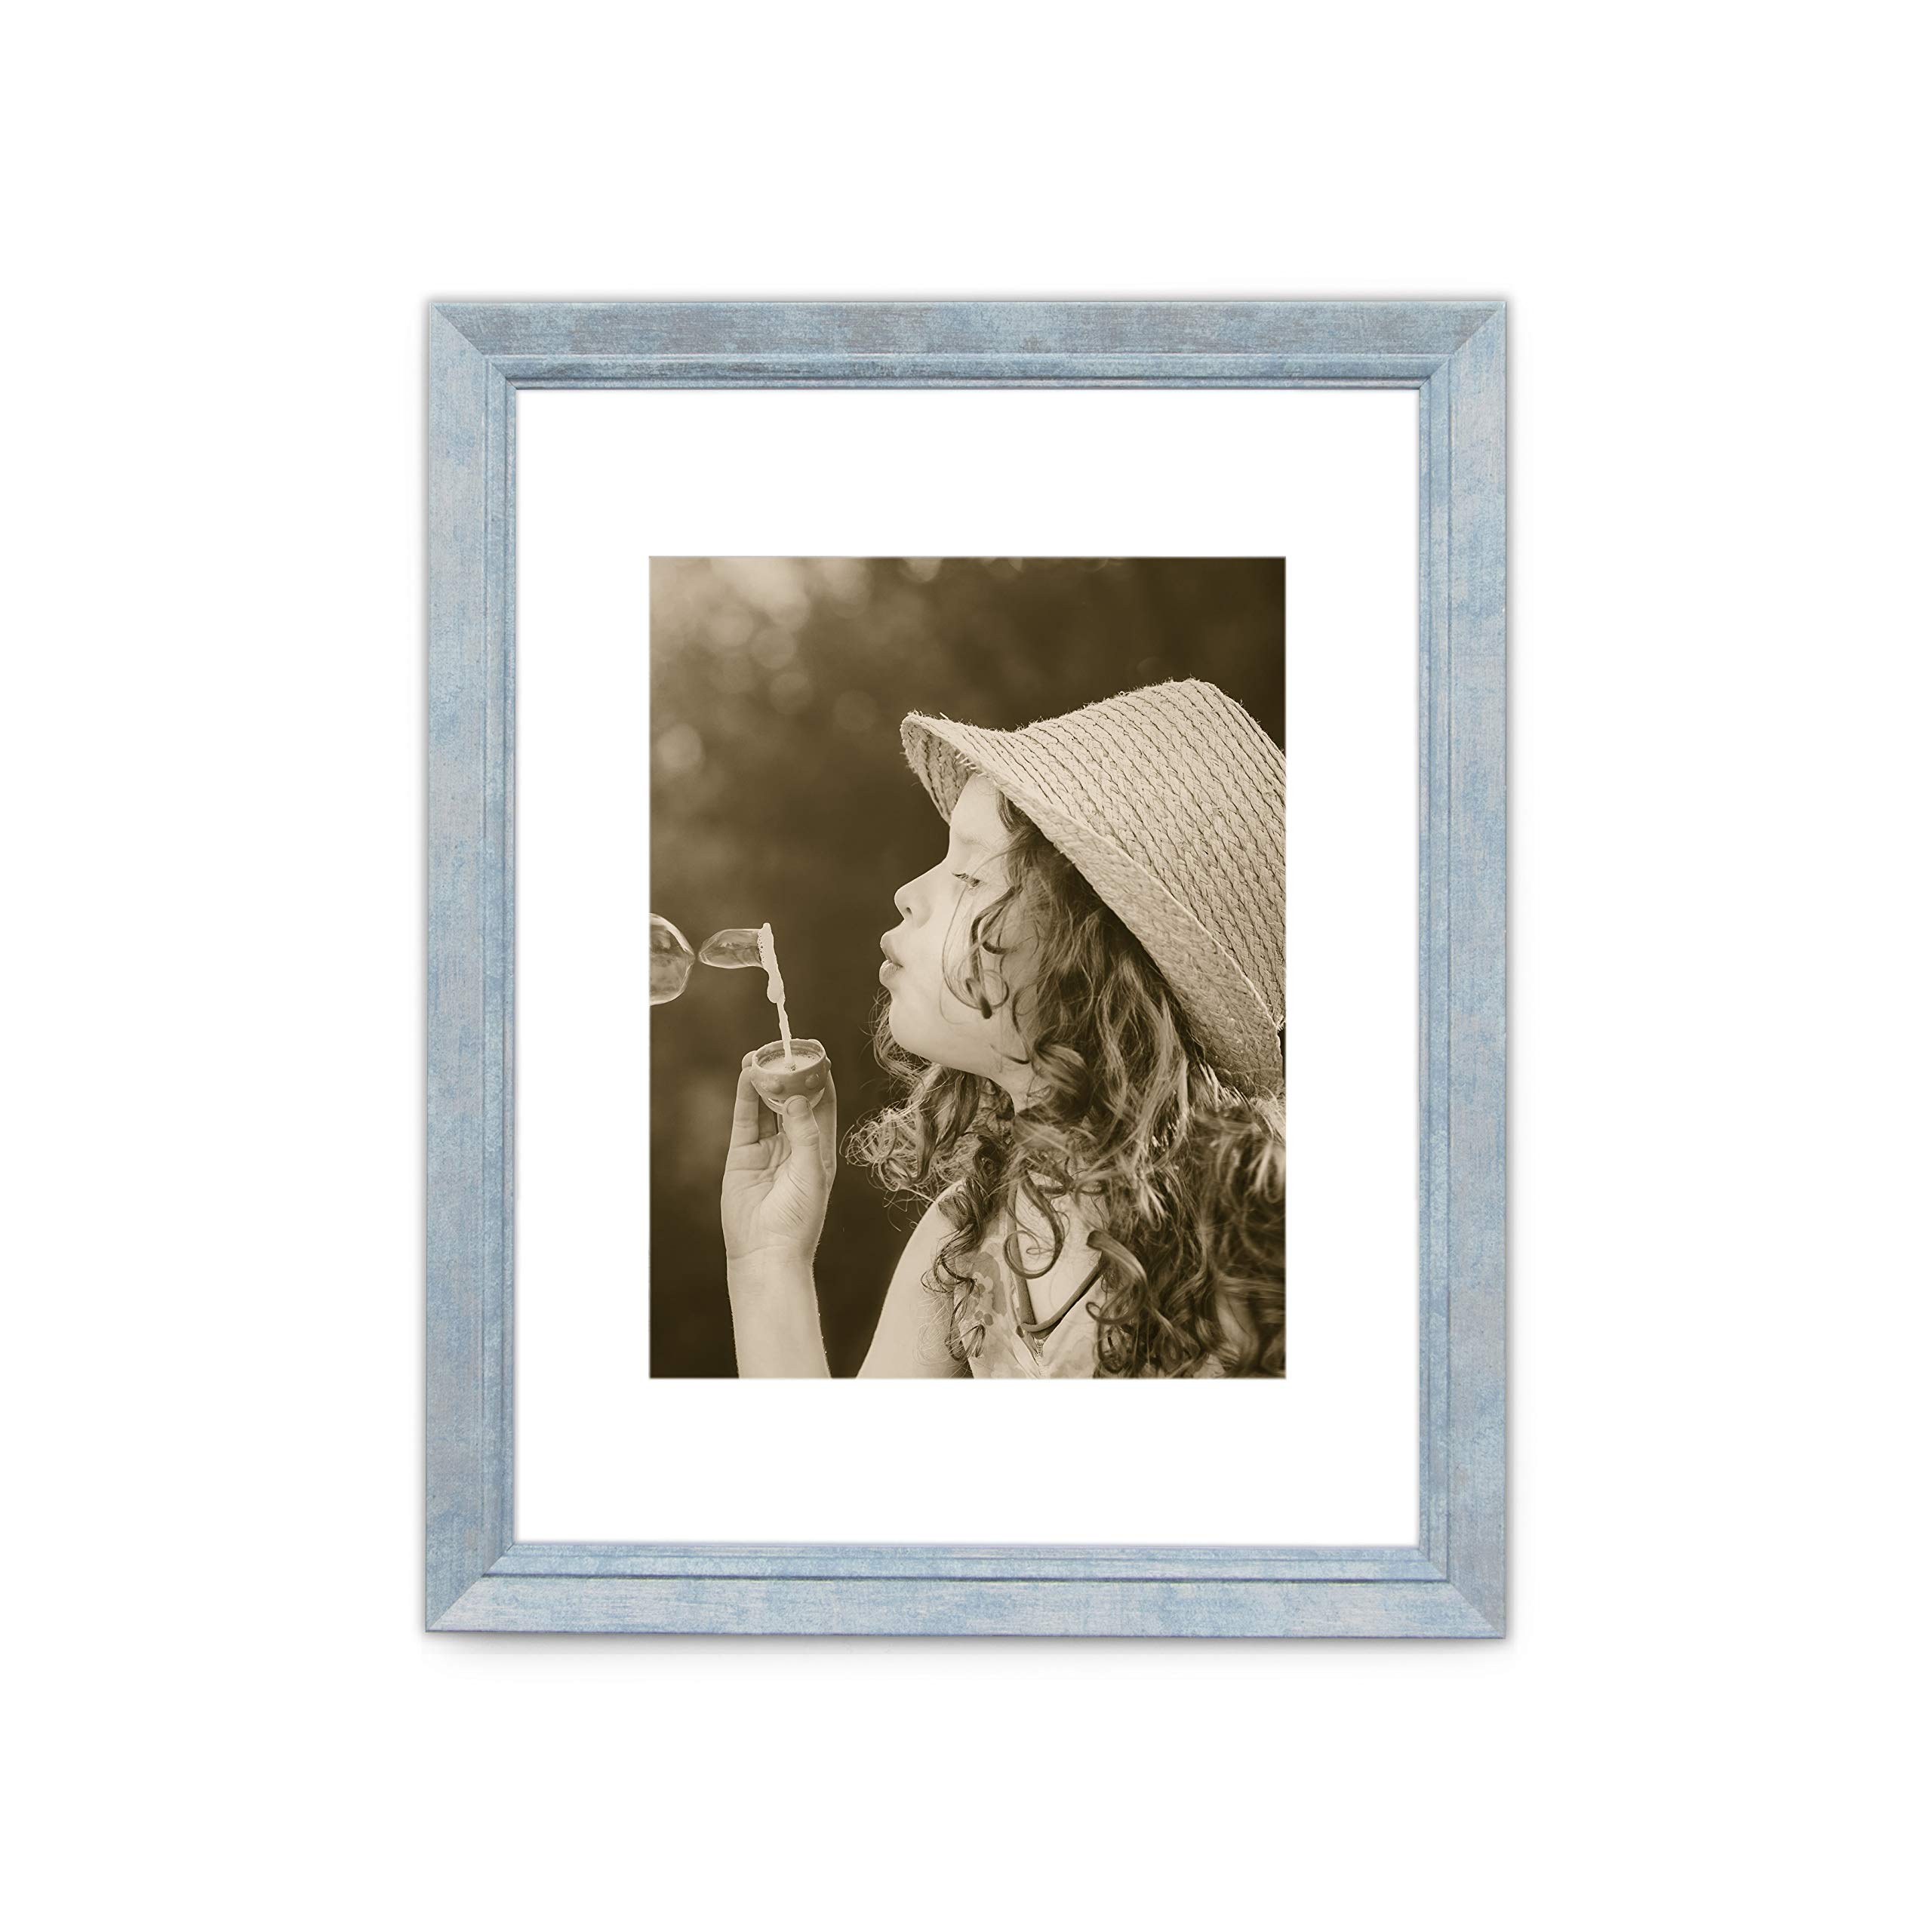 11x14 Picture Frame Distressed Blue - Made to Display Pictures 8x10 with Mat or 11x14 Without Mat - Frames by EcoHome